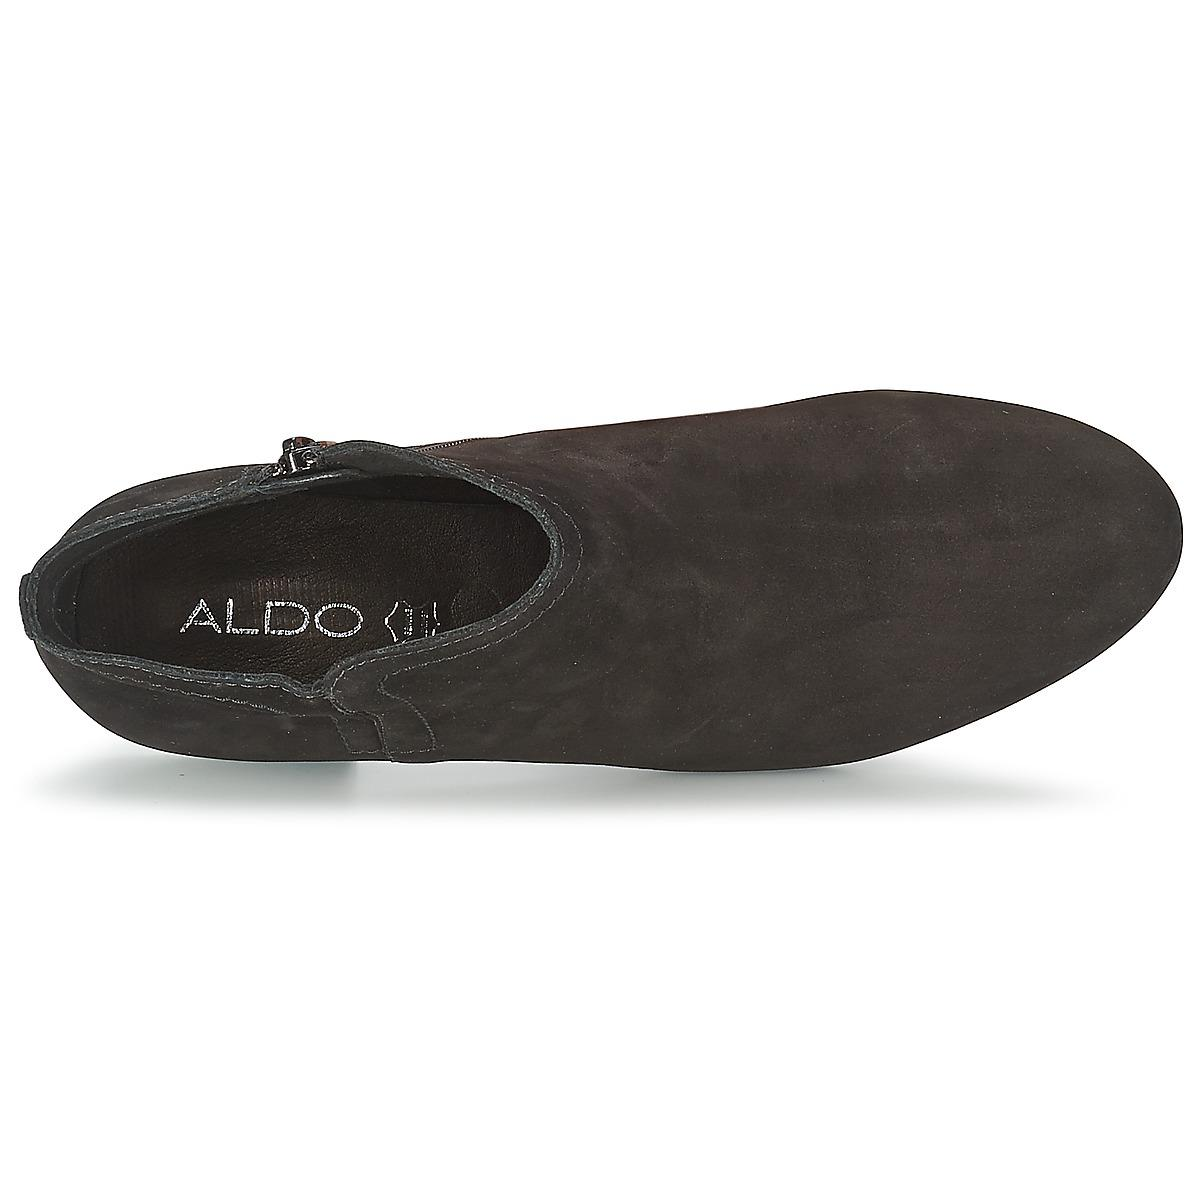 ALDO Leather Afaleri Women's Mid Boots In Black - Save 22%